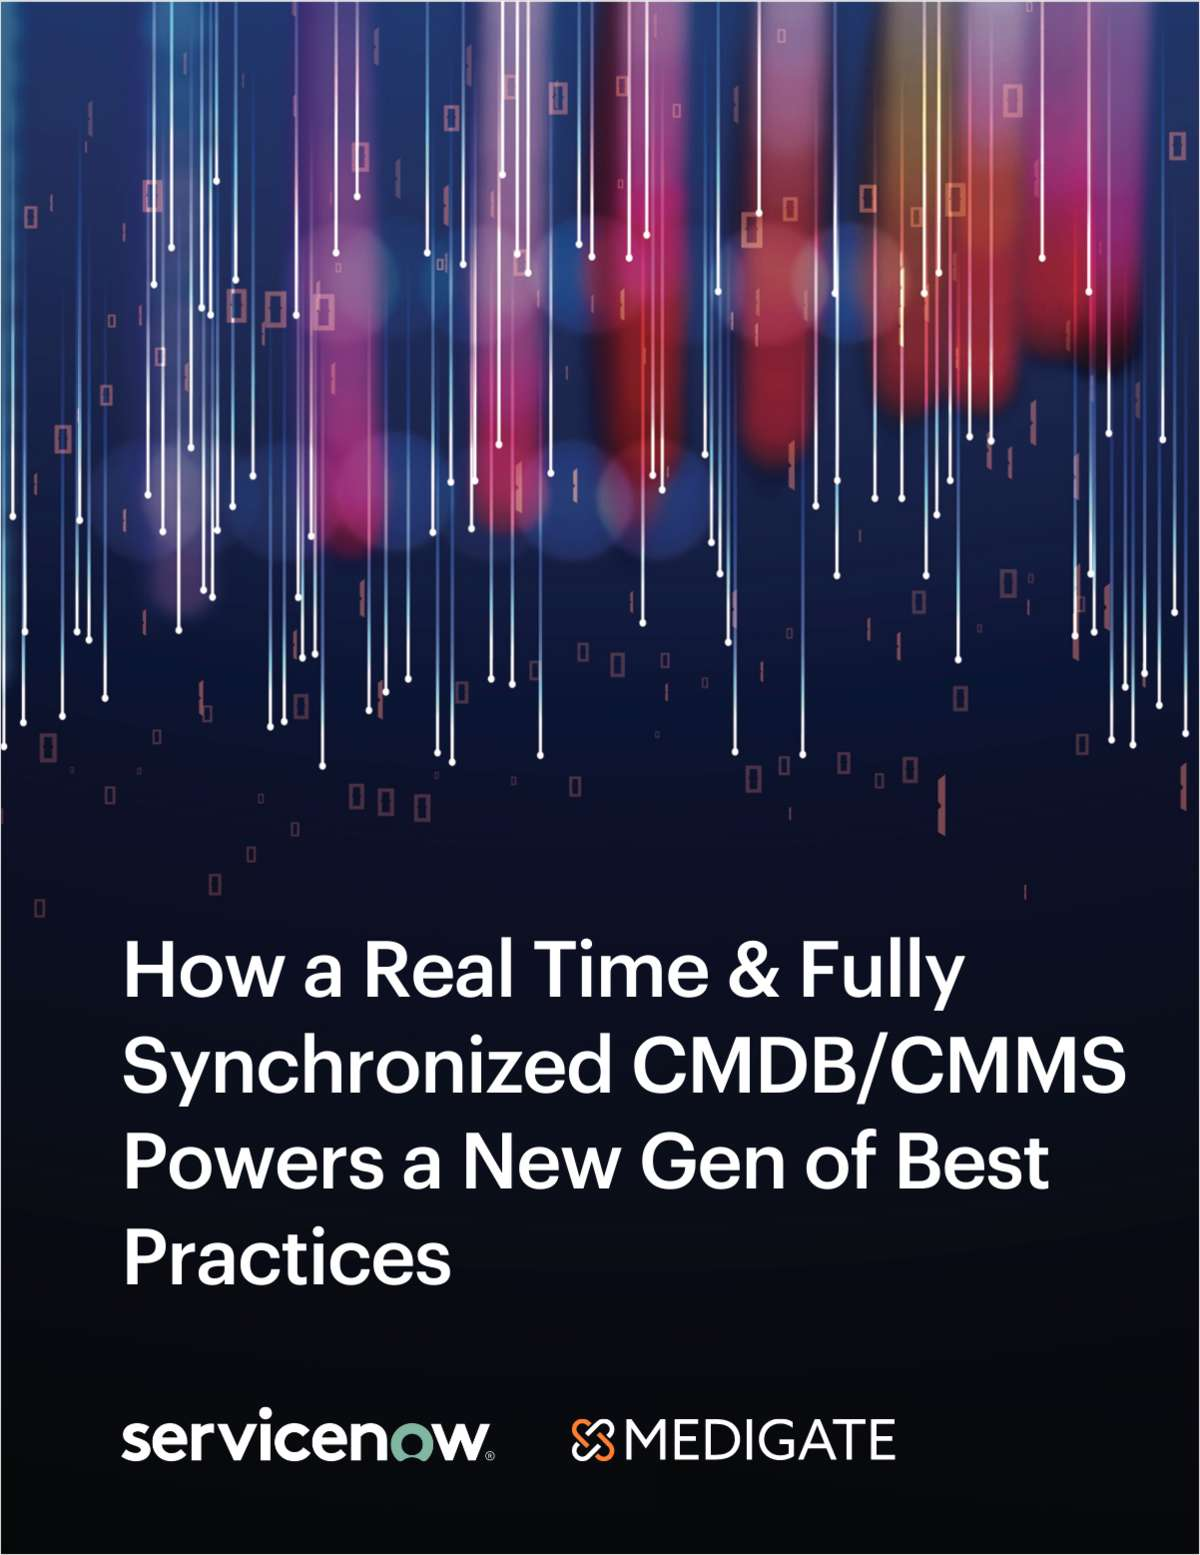 How a Real Time & Fully Synchronized CMDB/CMMS Powers a New Gen of Best Practices